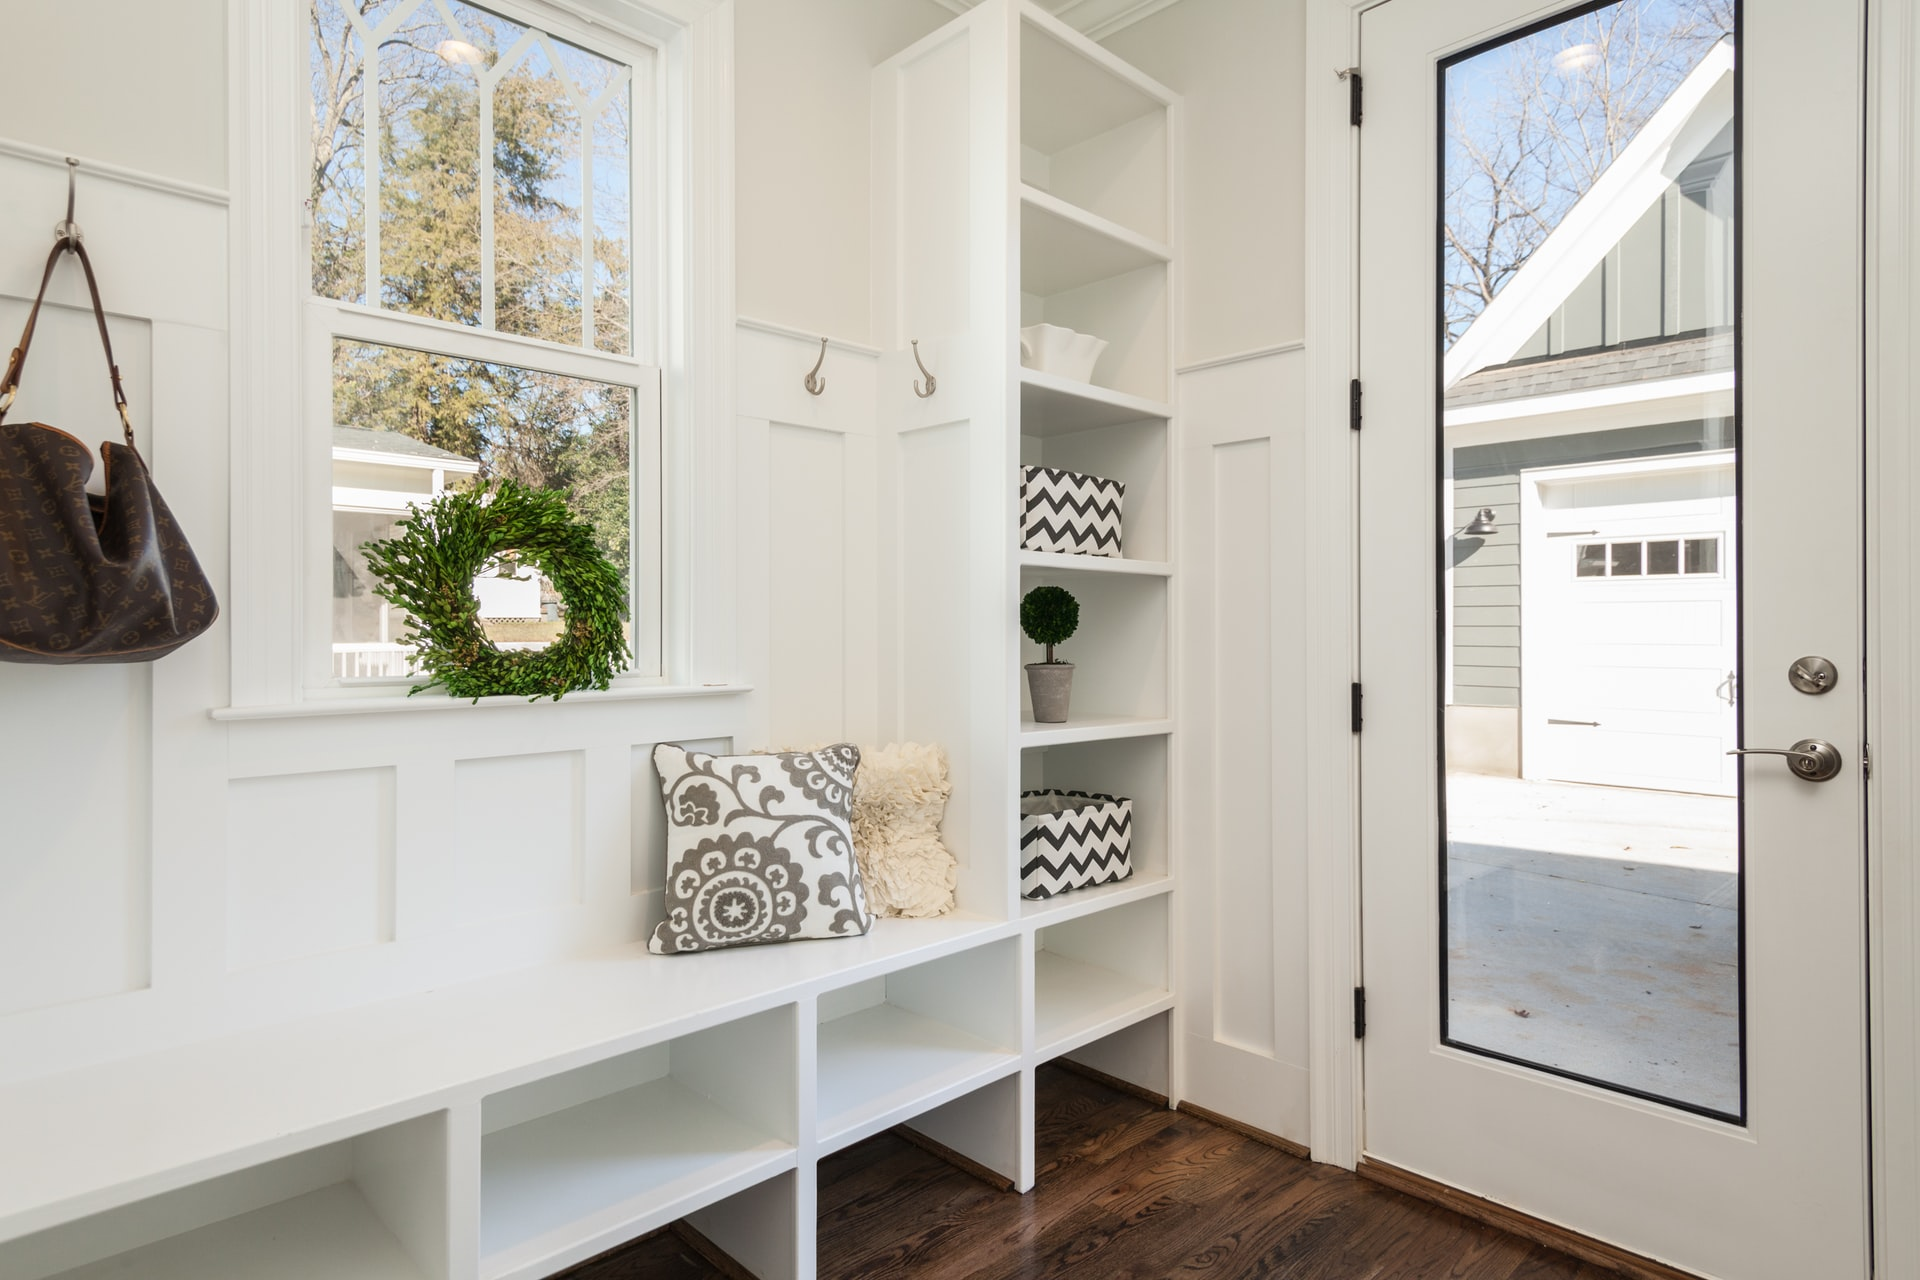 built in shelving and bench to organize and hallway entry